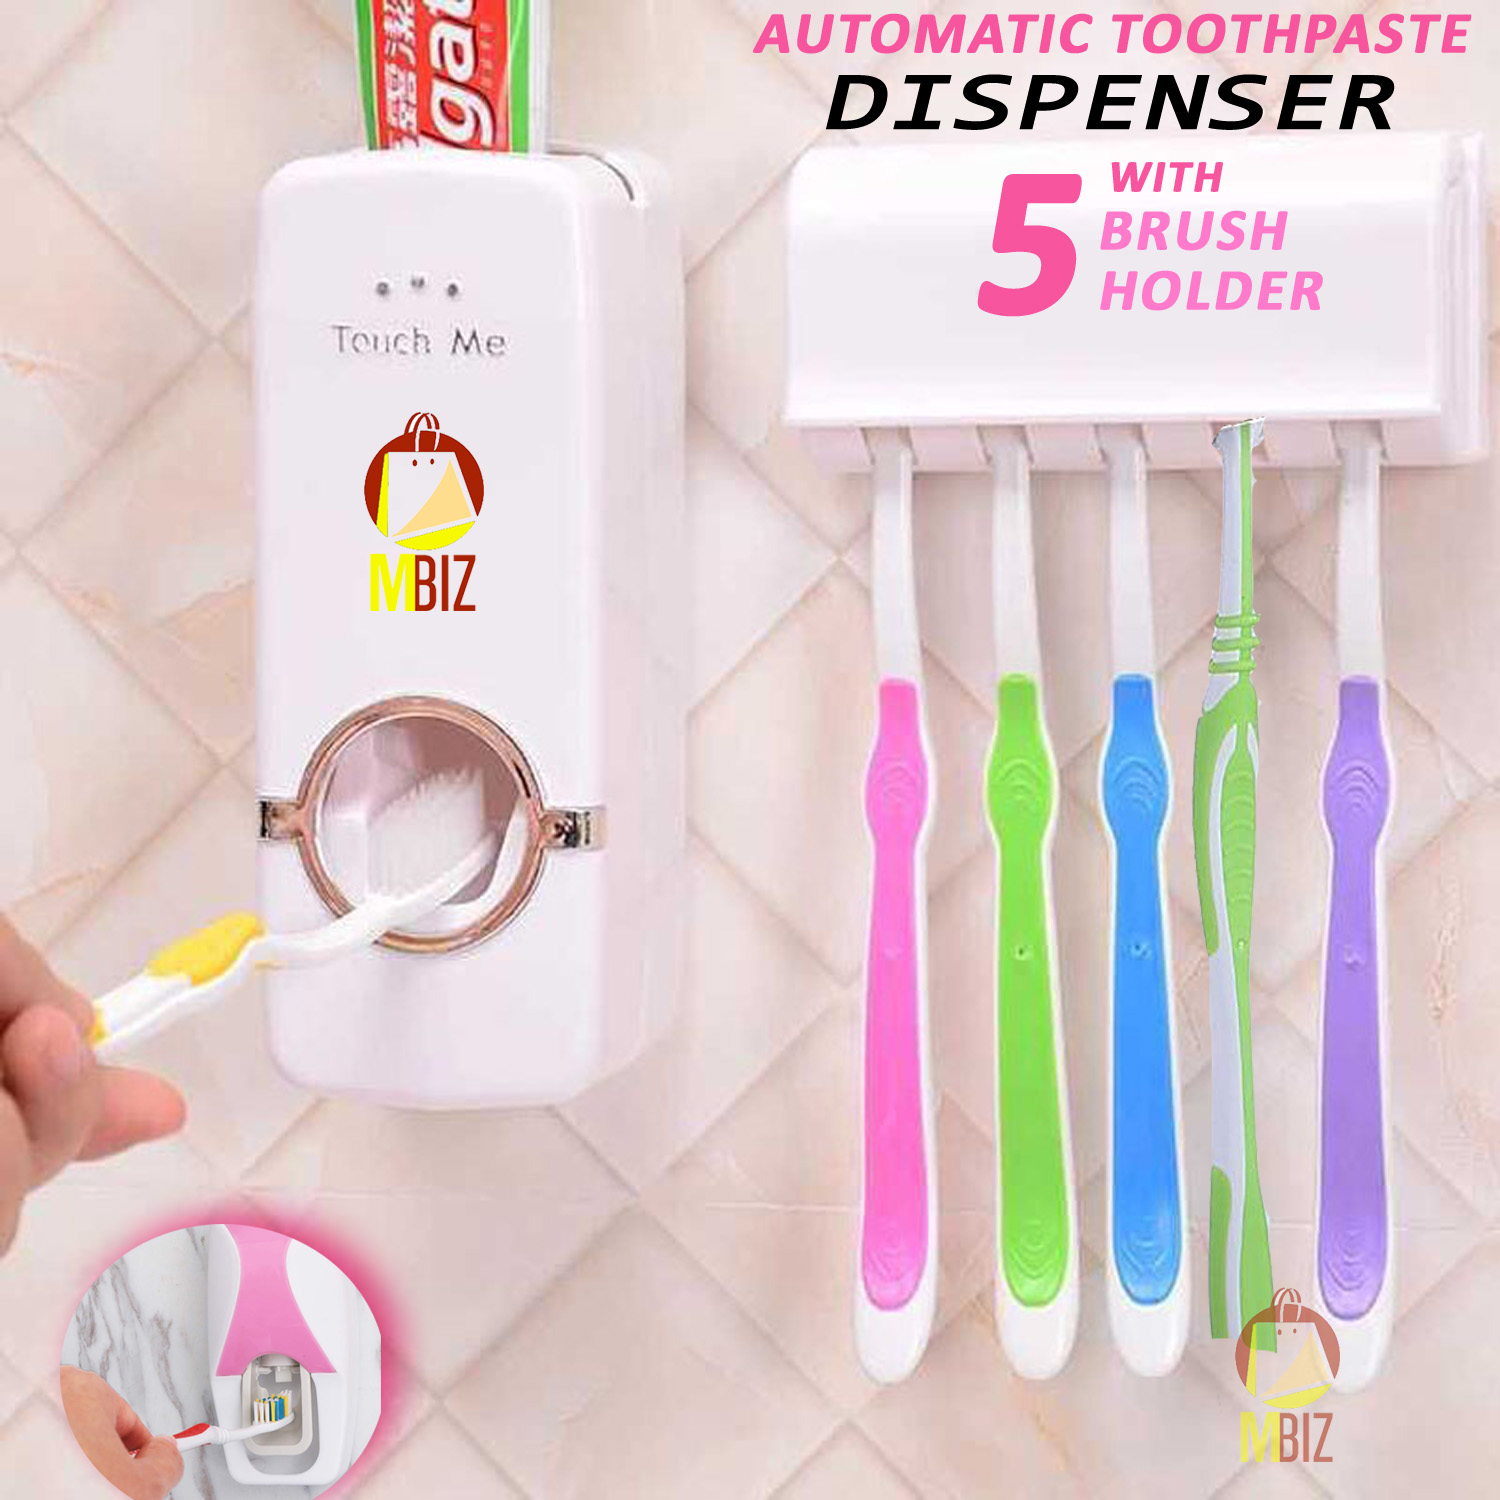 Automatic Universal Toothpaste Dispenser And 5 Tooth Brush Holder For Home Bathroom Acessories